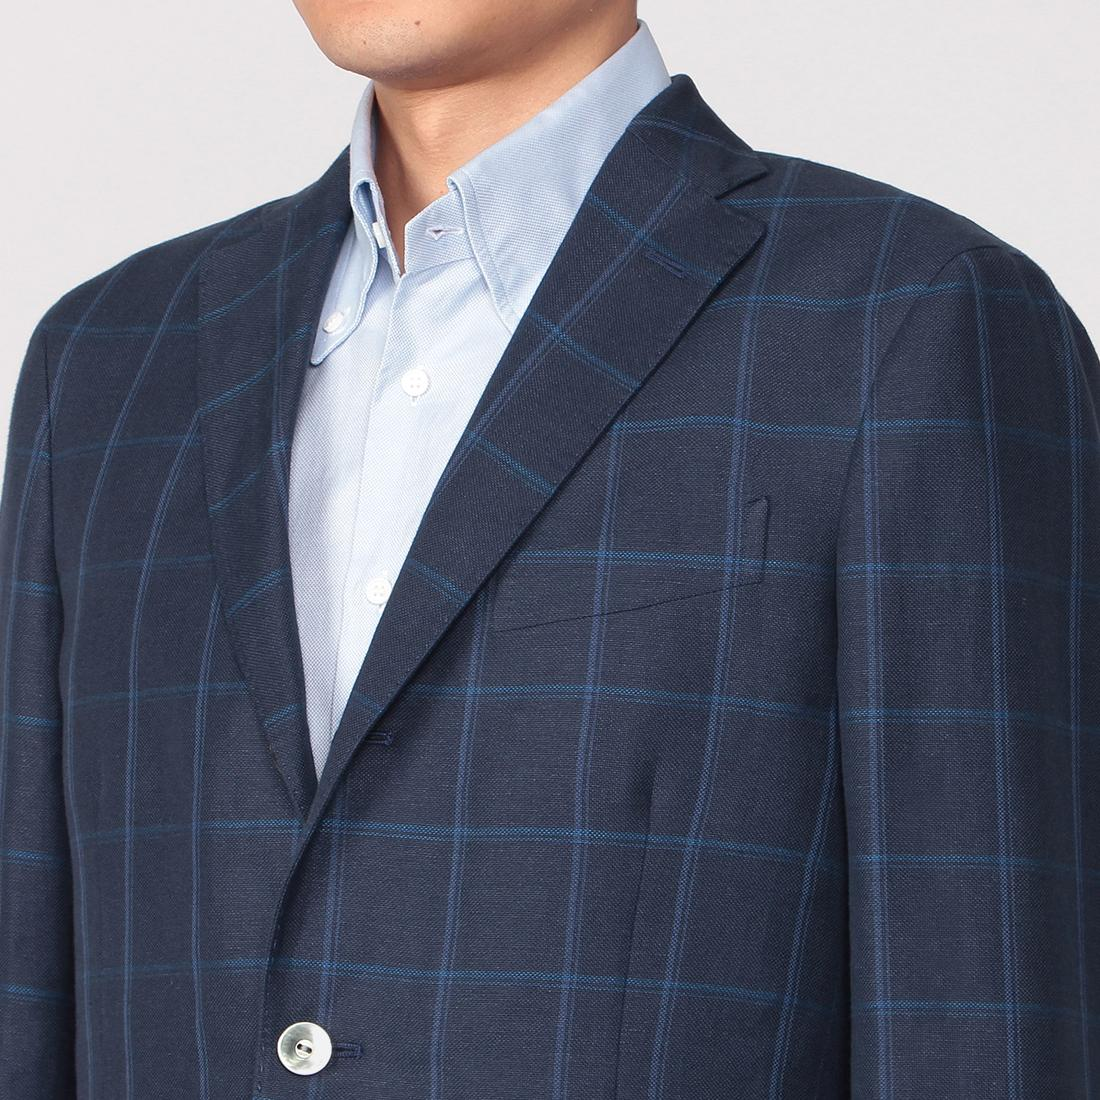 Dover Linen Cotton Windowpane: Navy